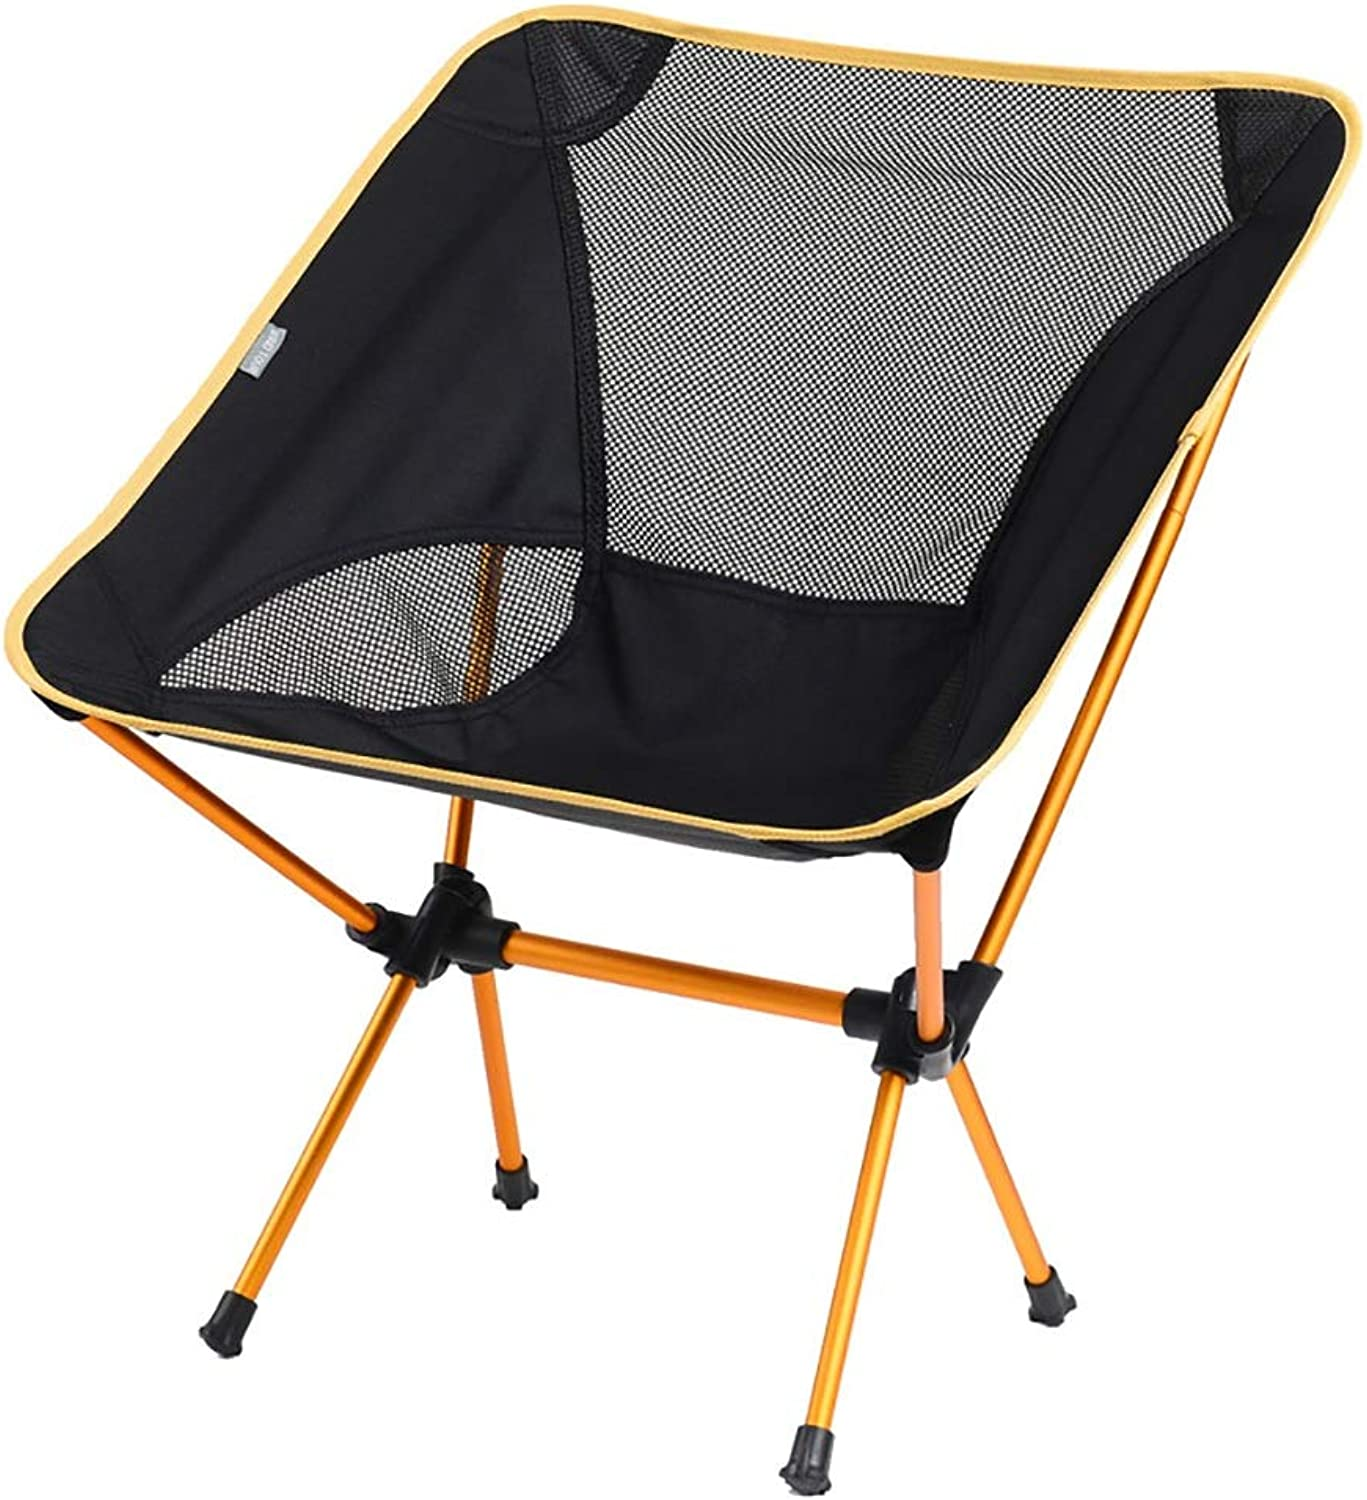 Small Folding Camping Backrest Chair Stool Ultralight PortableOutdoor Folding Chair Sketch Camp Chair Bench for Fishing Hiking Mountaineering Mini Step Slacker Stool + Carry Bag (Load-Bearing 100